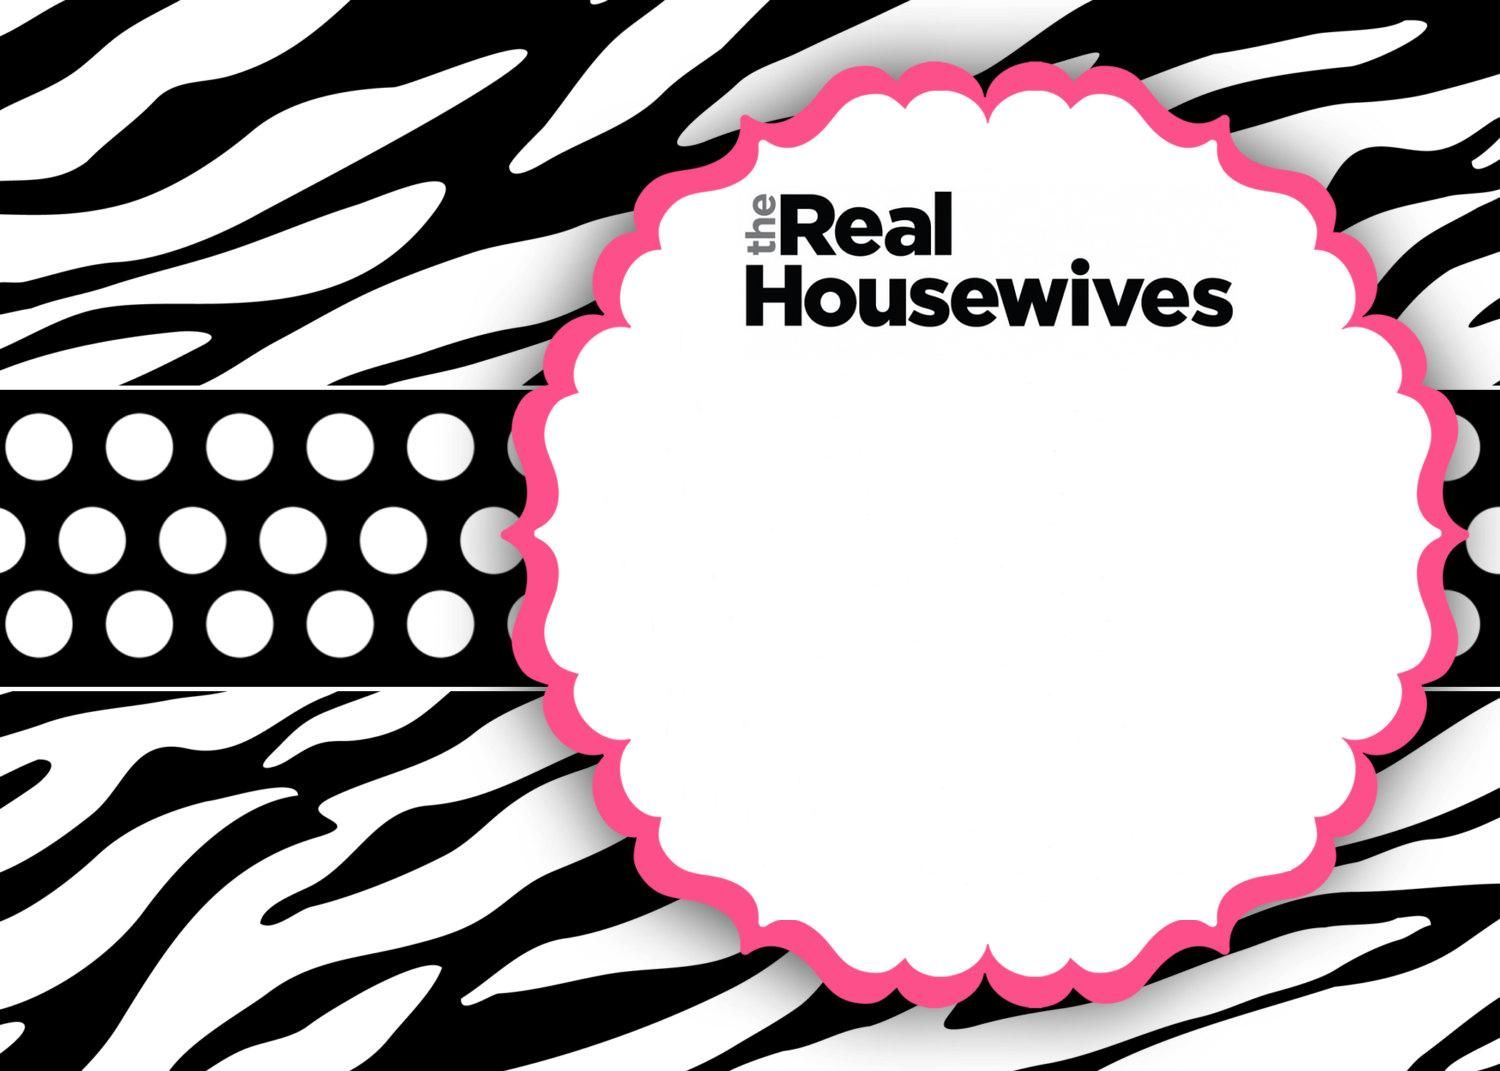 real housewives of new jersey party ideas free cute invite print out rhonj - Cute Things To Print Out